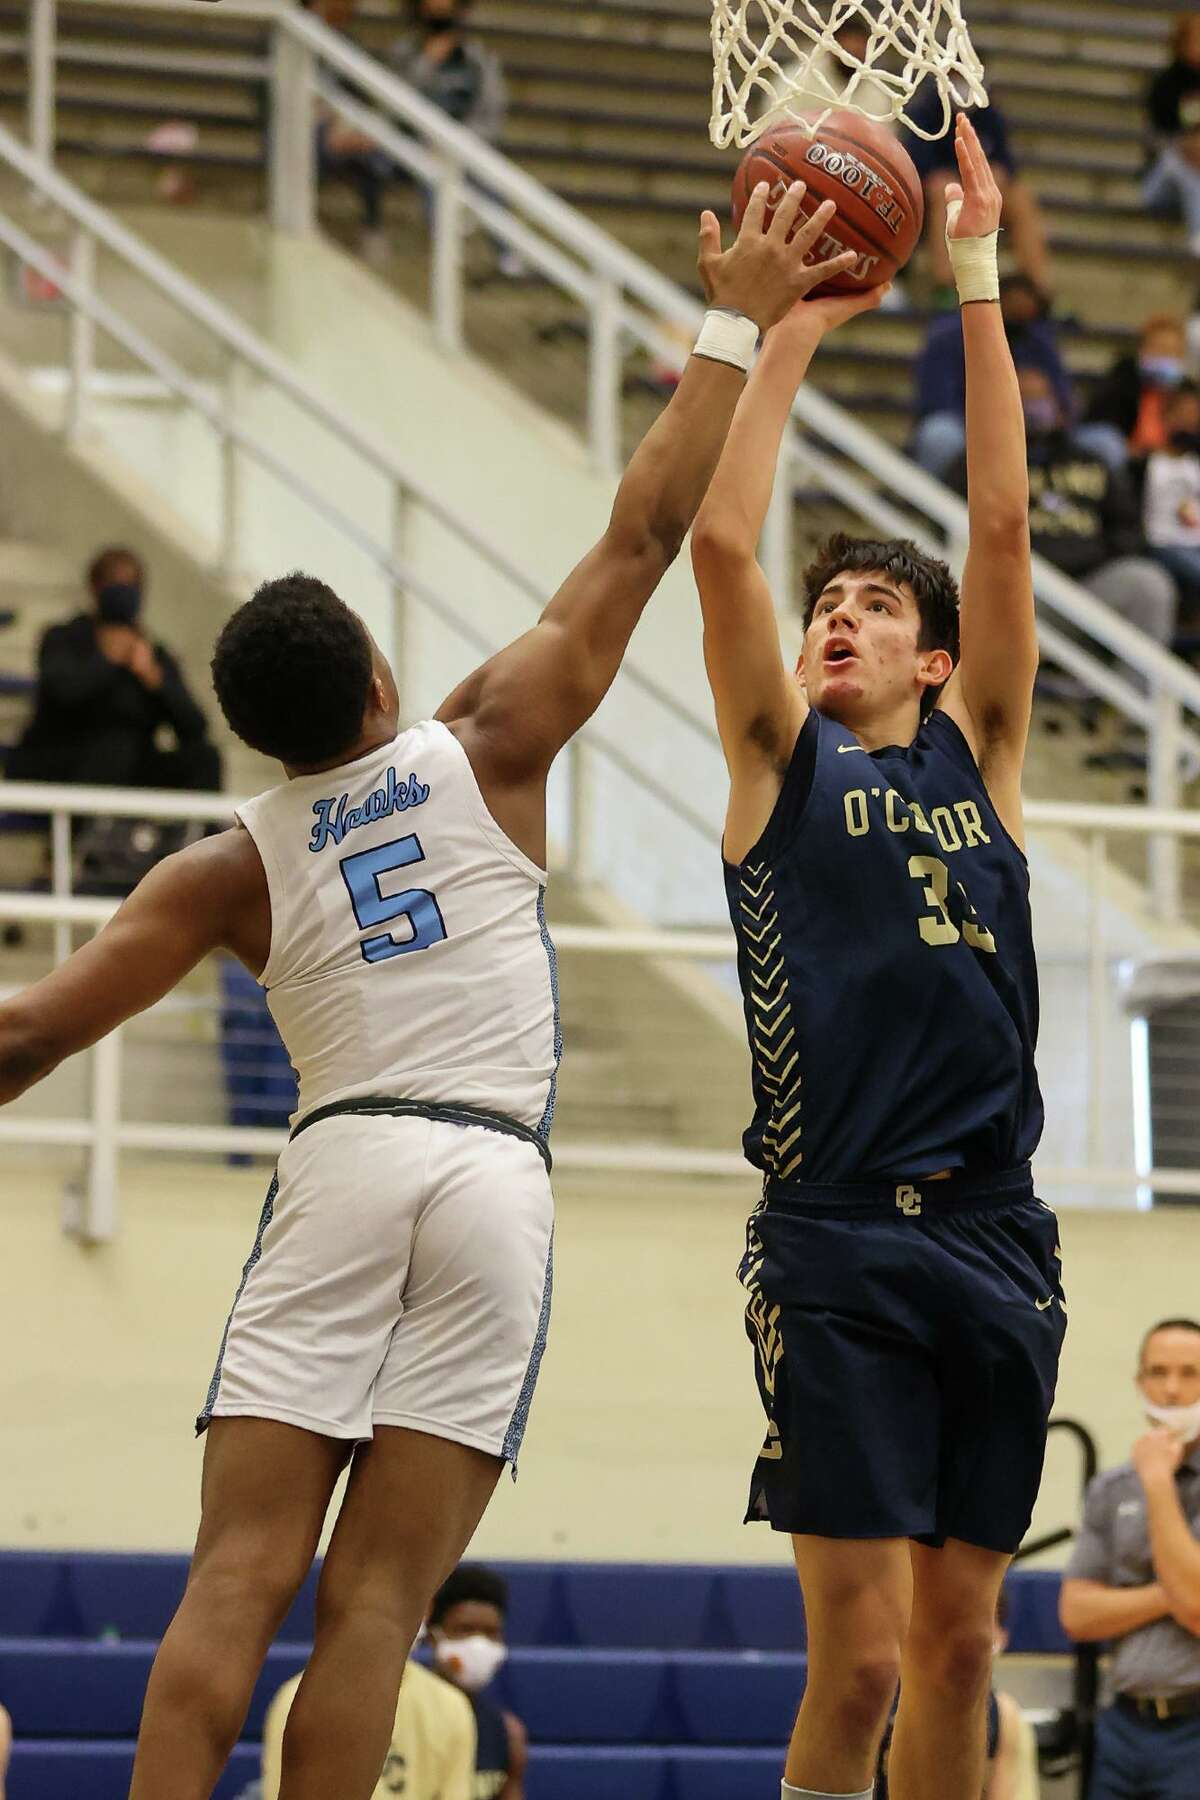 Harlan's Jaylen Streeter, left, tries to block a shot by O'Connor's Josh Alcocer during their District 29-6A boys basketball game at Paul Taylor Field House on Saturday, Jan. 9, 2021. O'Connor beat Harlan 59-50.